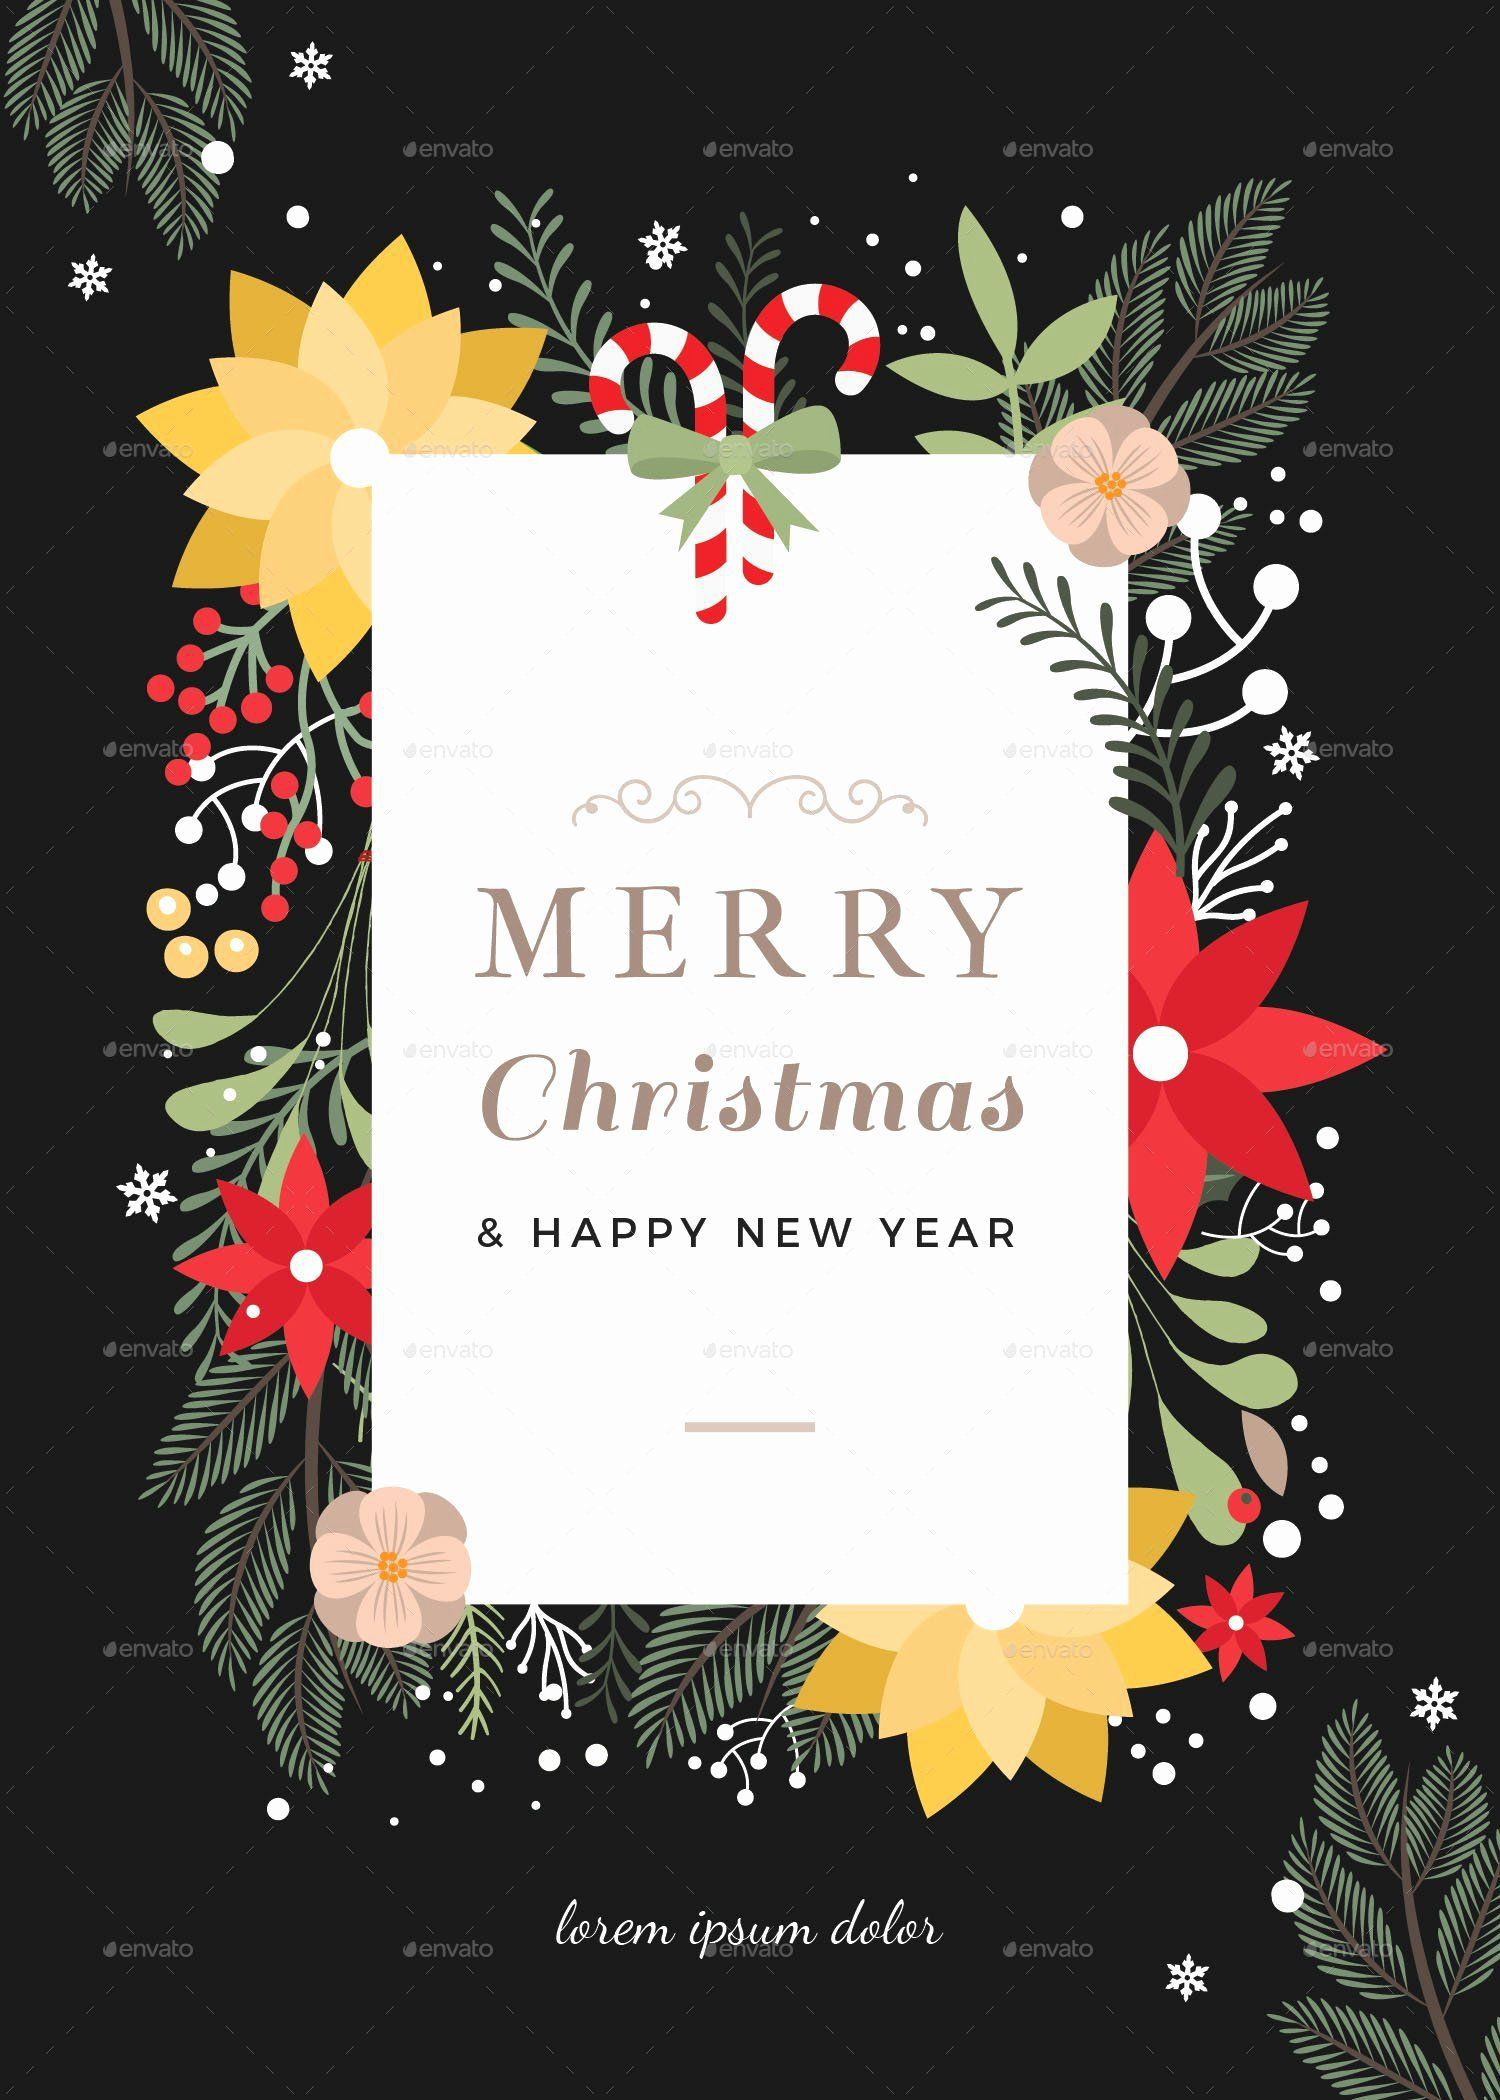 003 Phenomenal Christma Card Template Free Download Photo  Xma PlaceFull